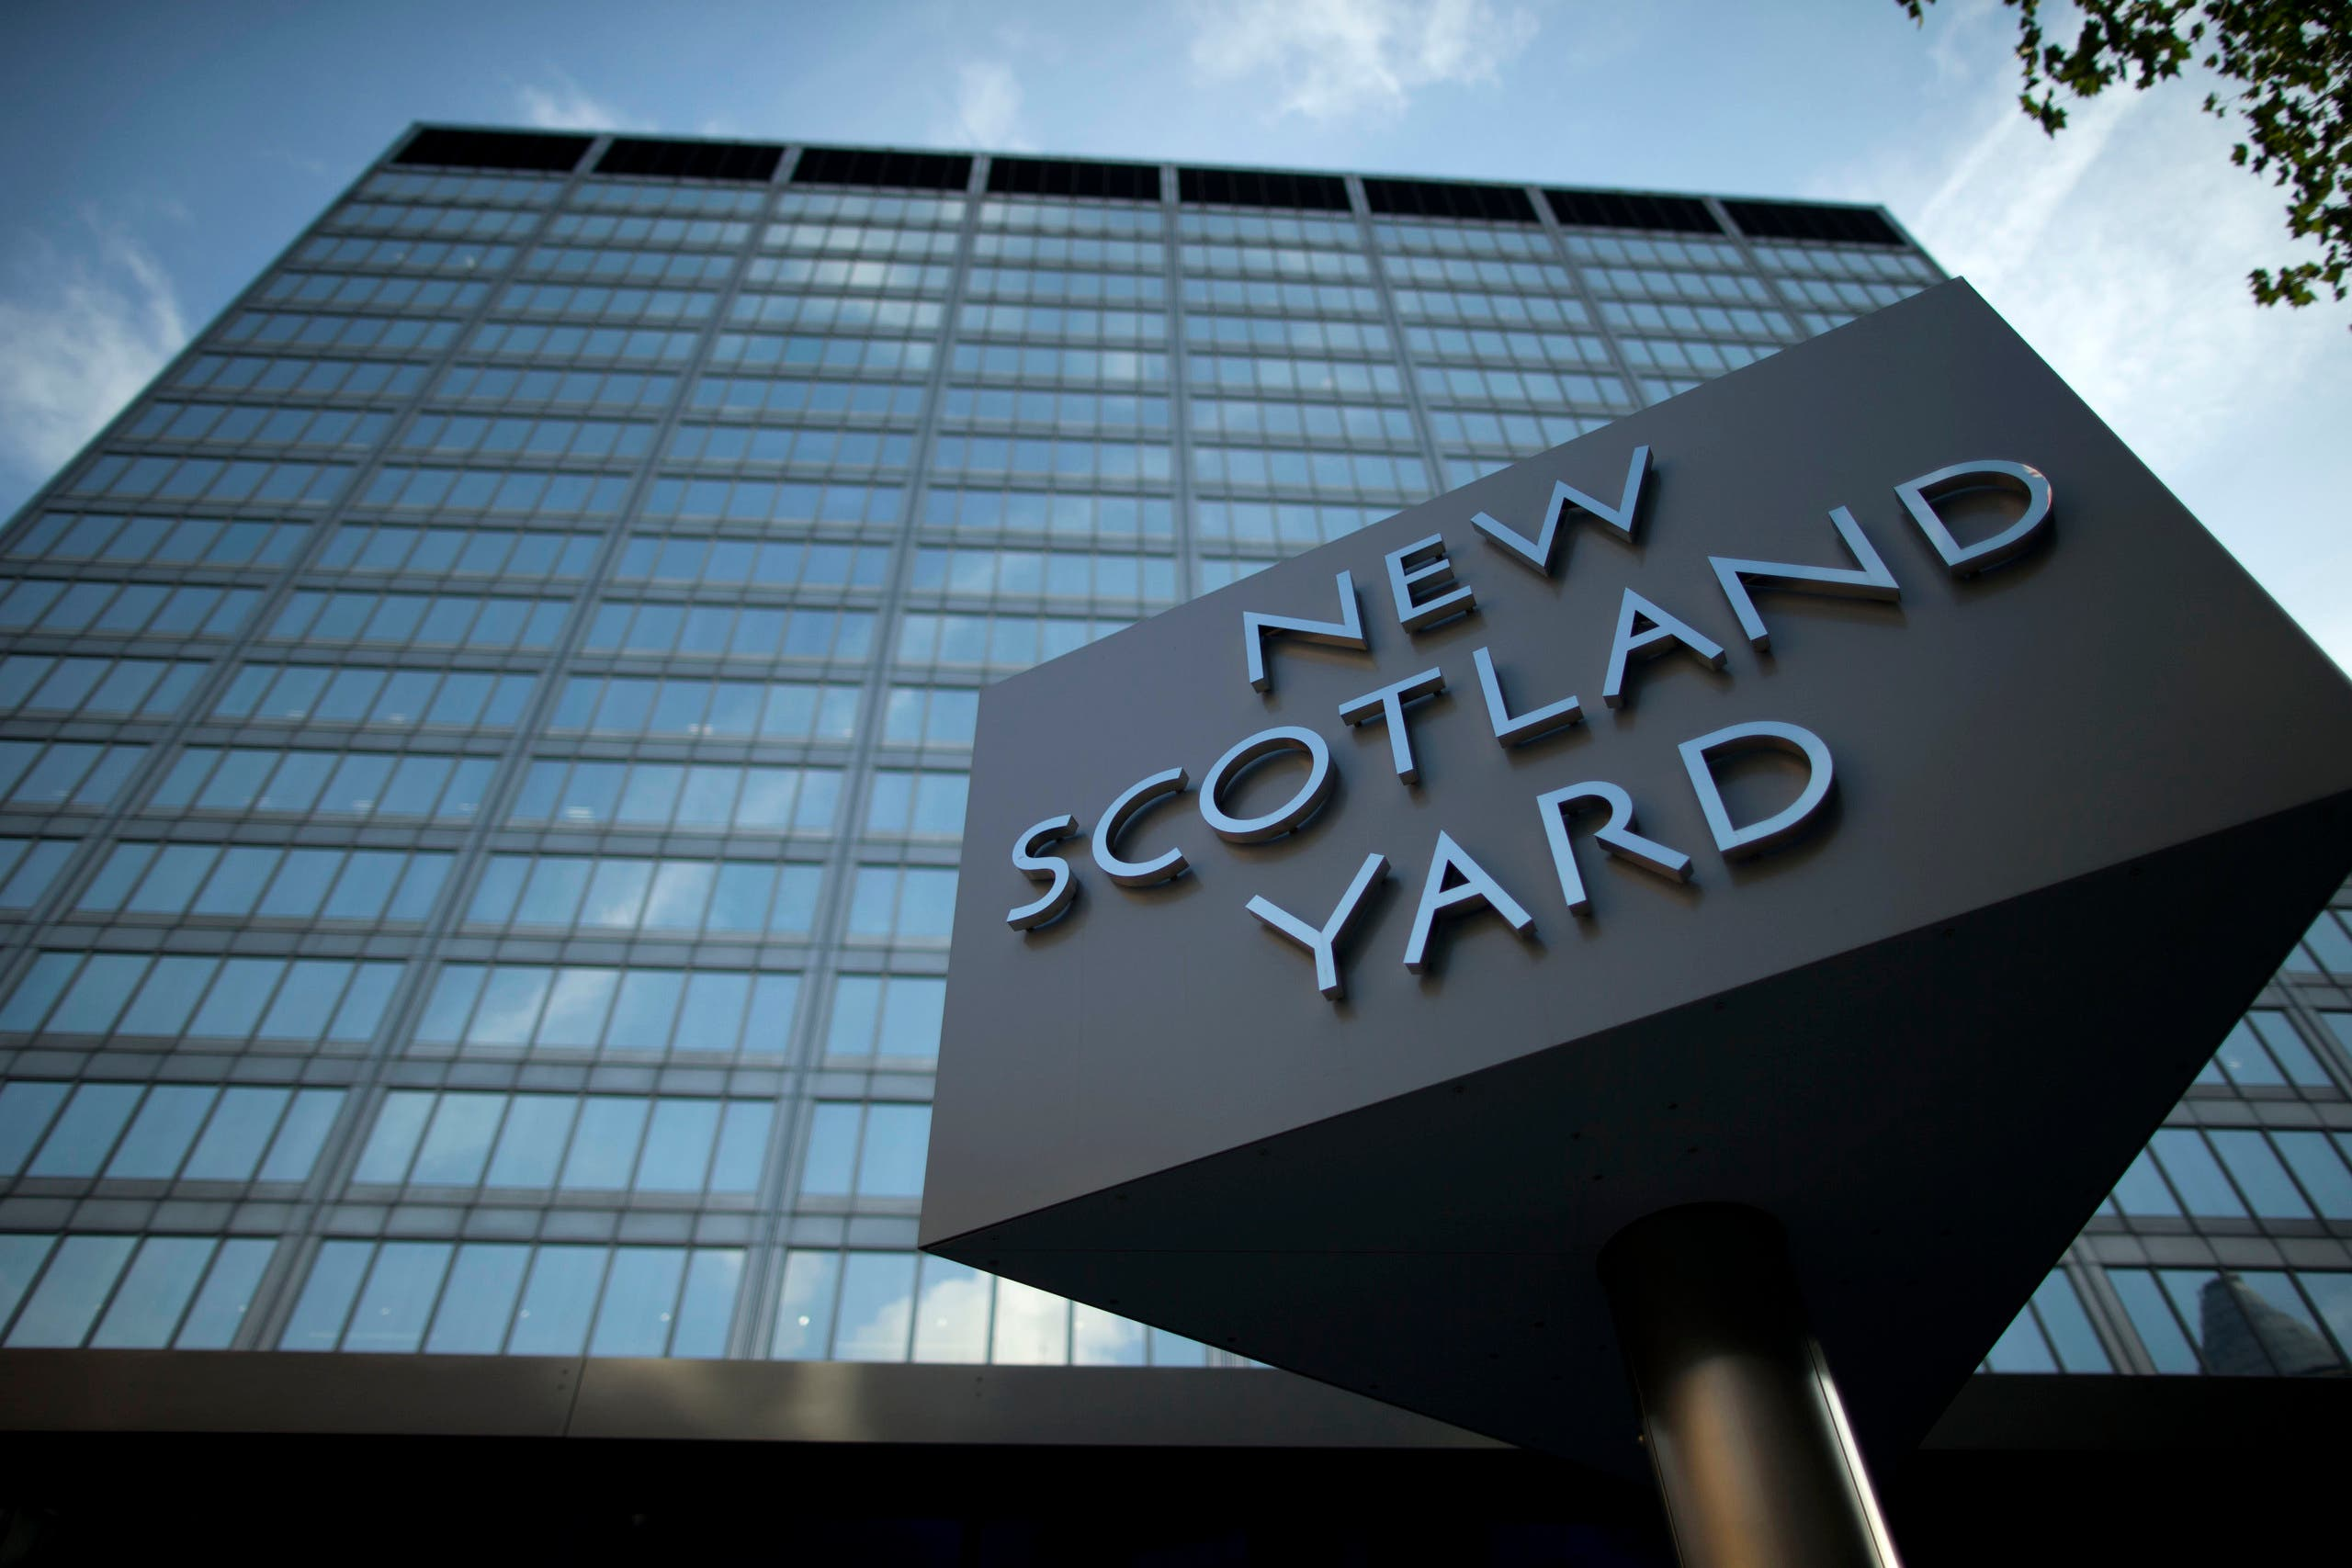 Abu Dhabi Financial Group acquired New Scotland Yard,  the former headquarters building of London's Metropolitan Police force in central London, for $600 million. (AP)